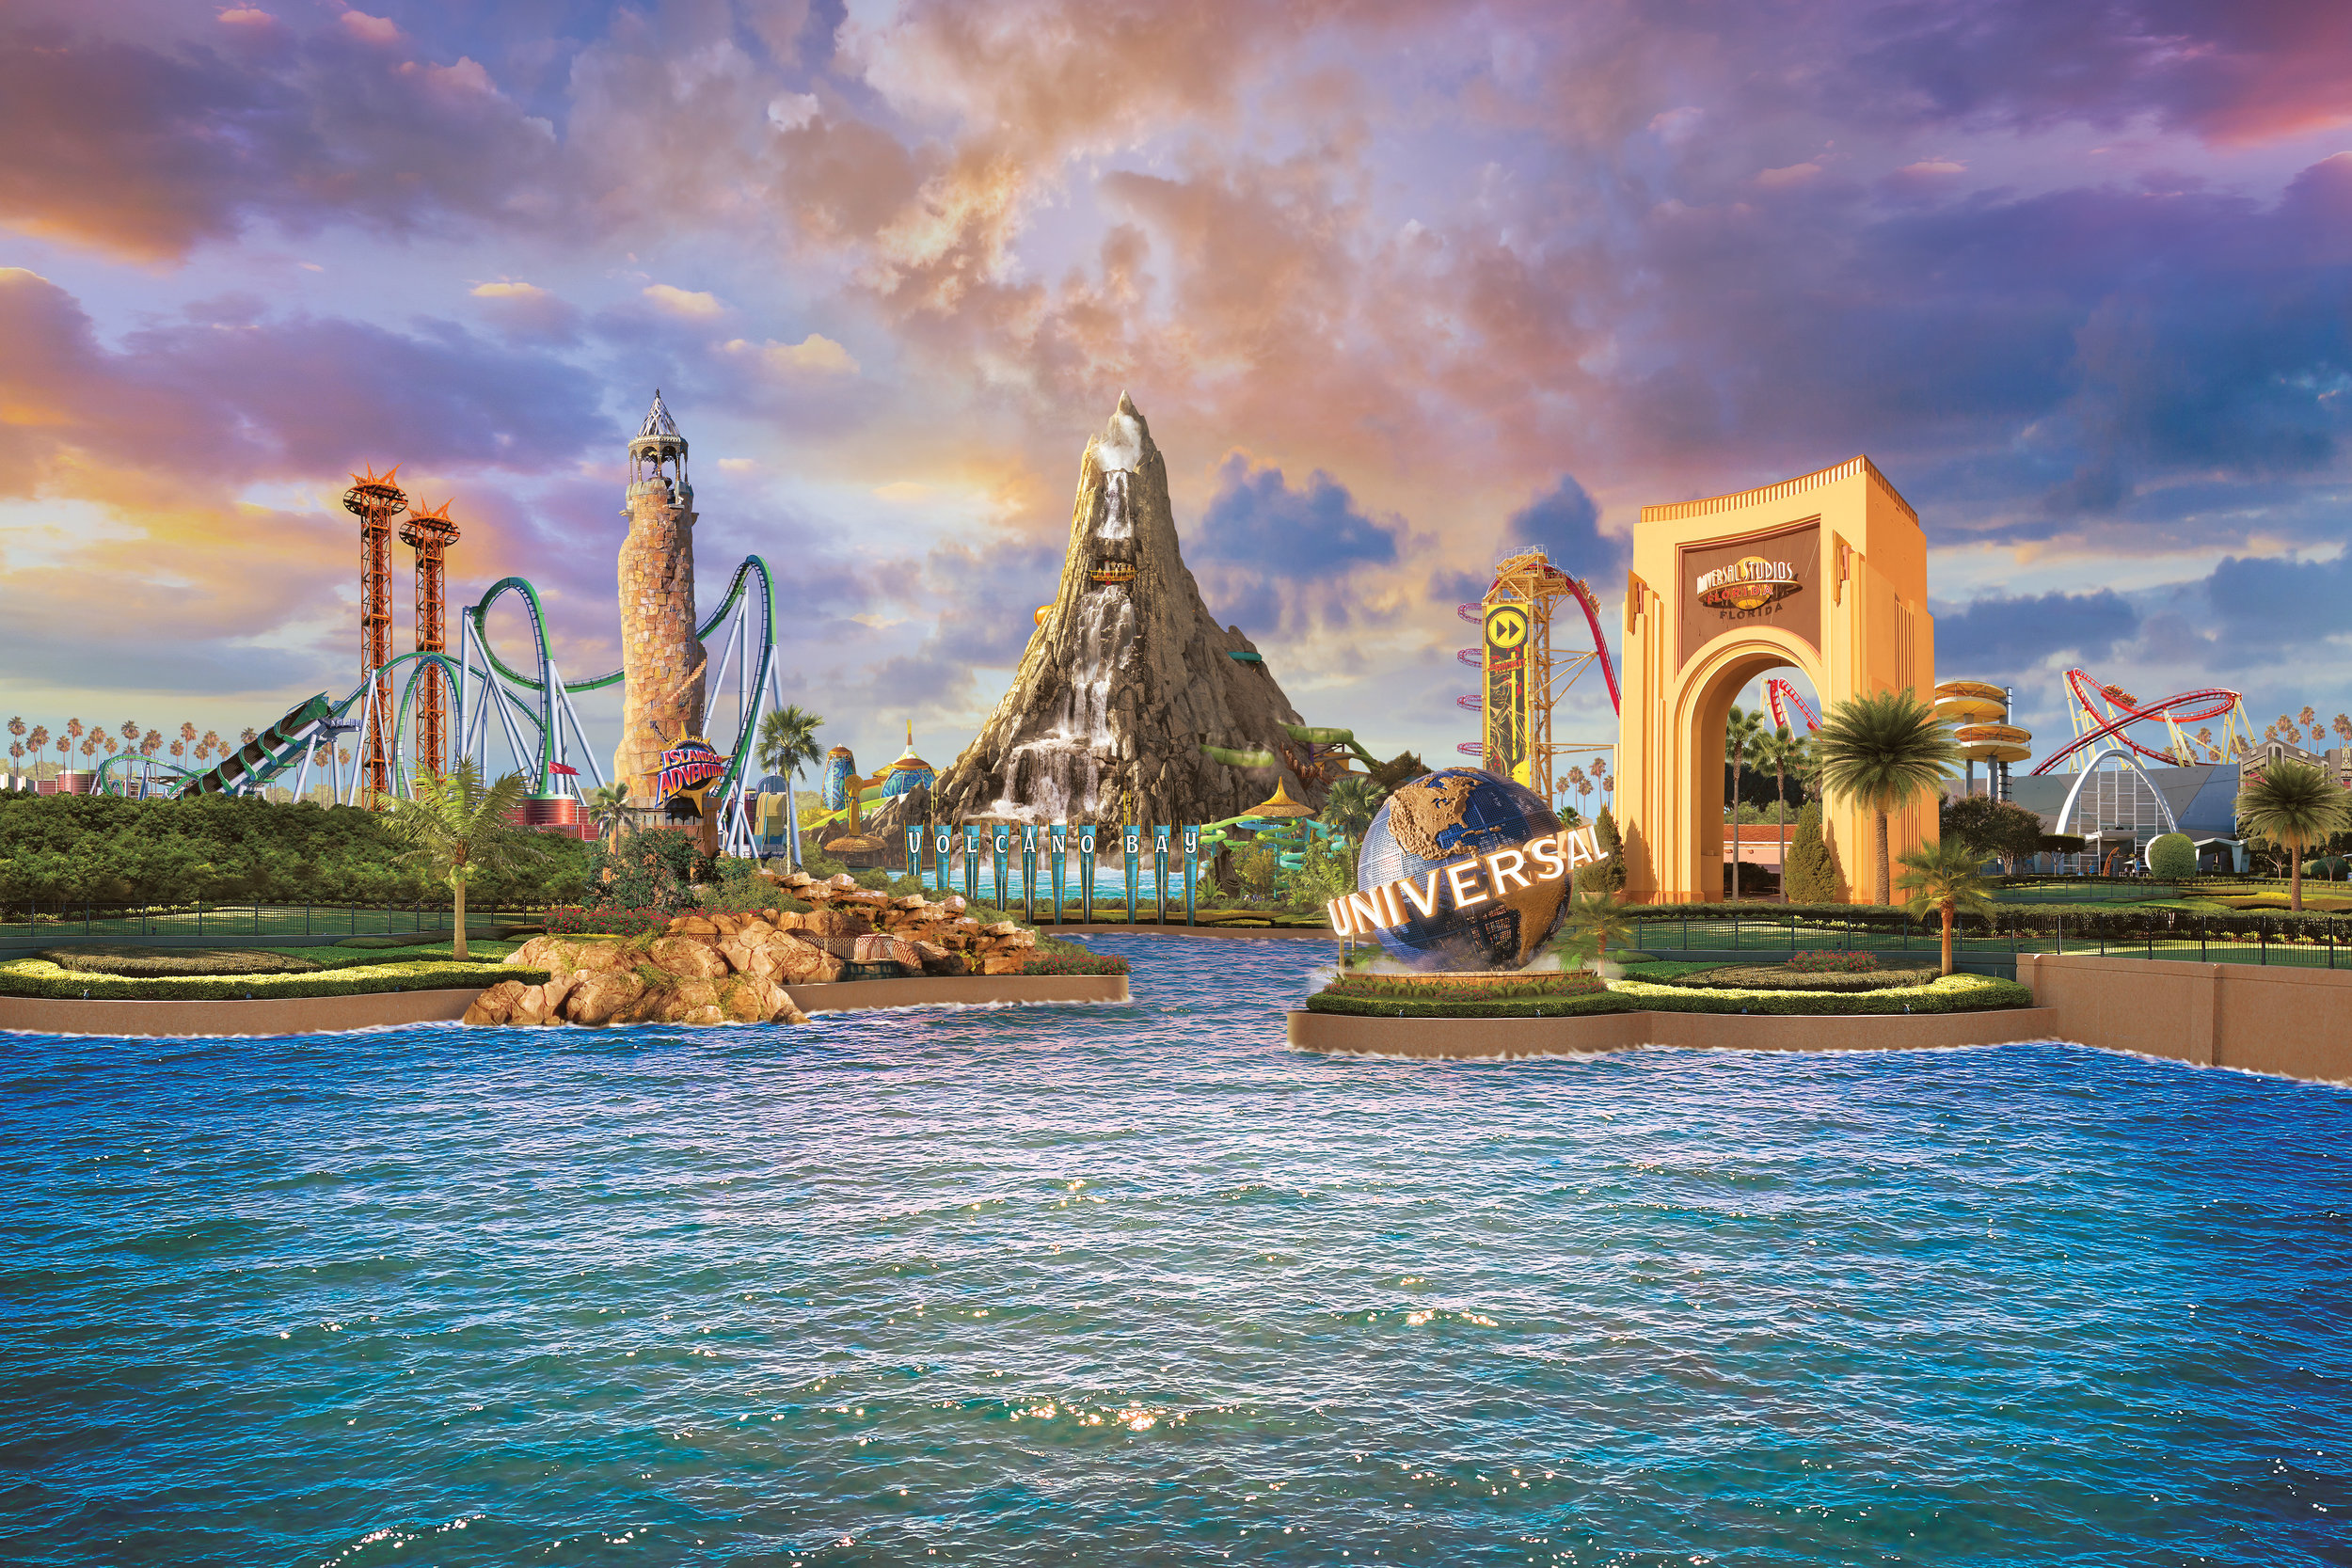 Universal Orlando Resort Destination Scope Image.jpg